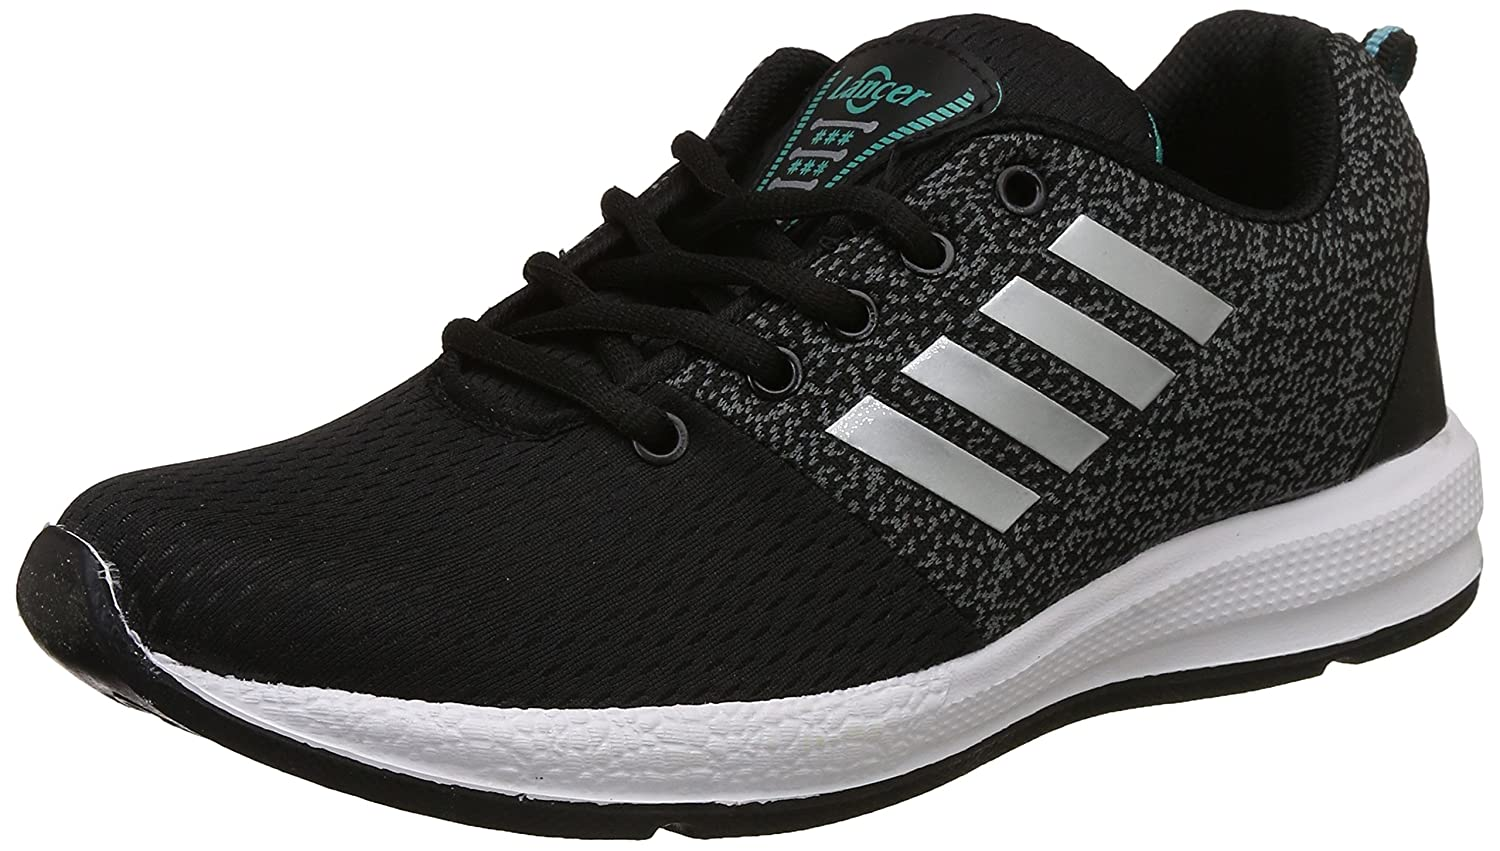 lowest price 51f49 a5e48 Lancer Men's Running Shoes